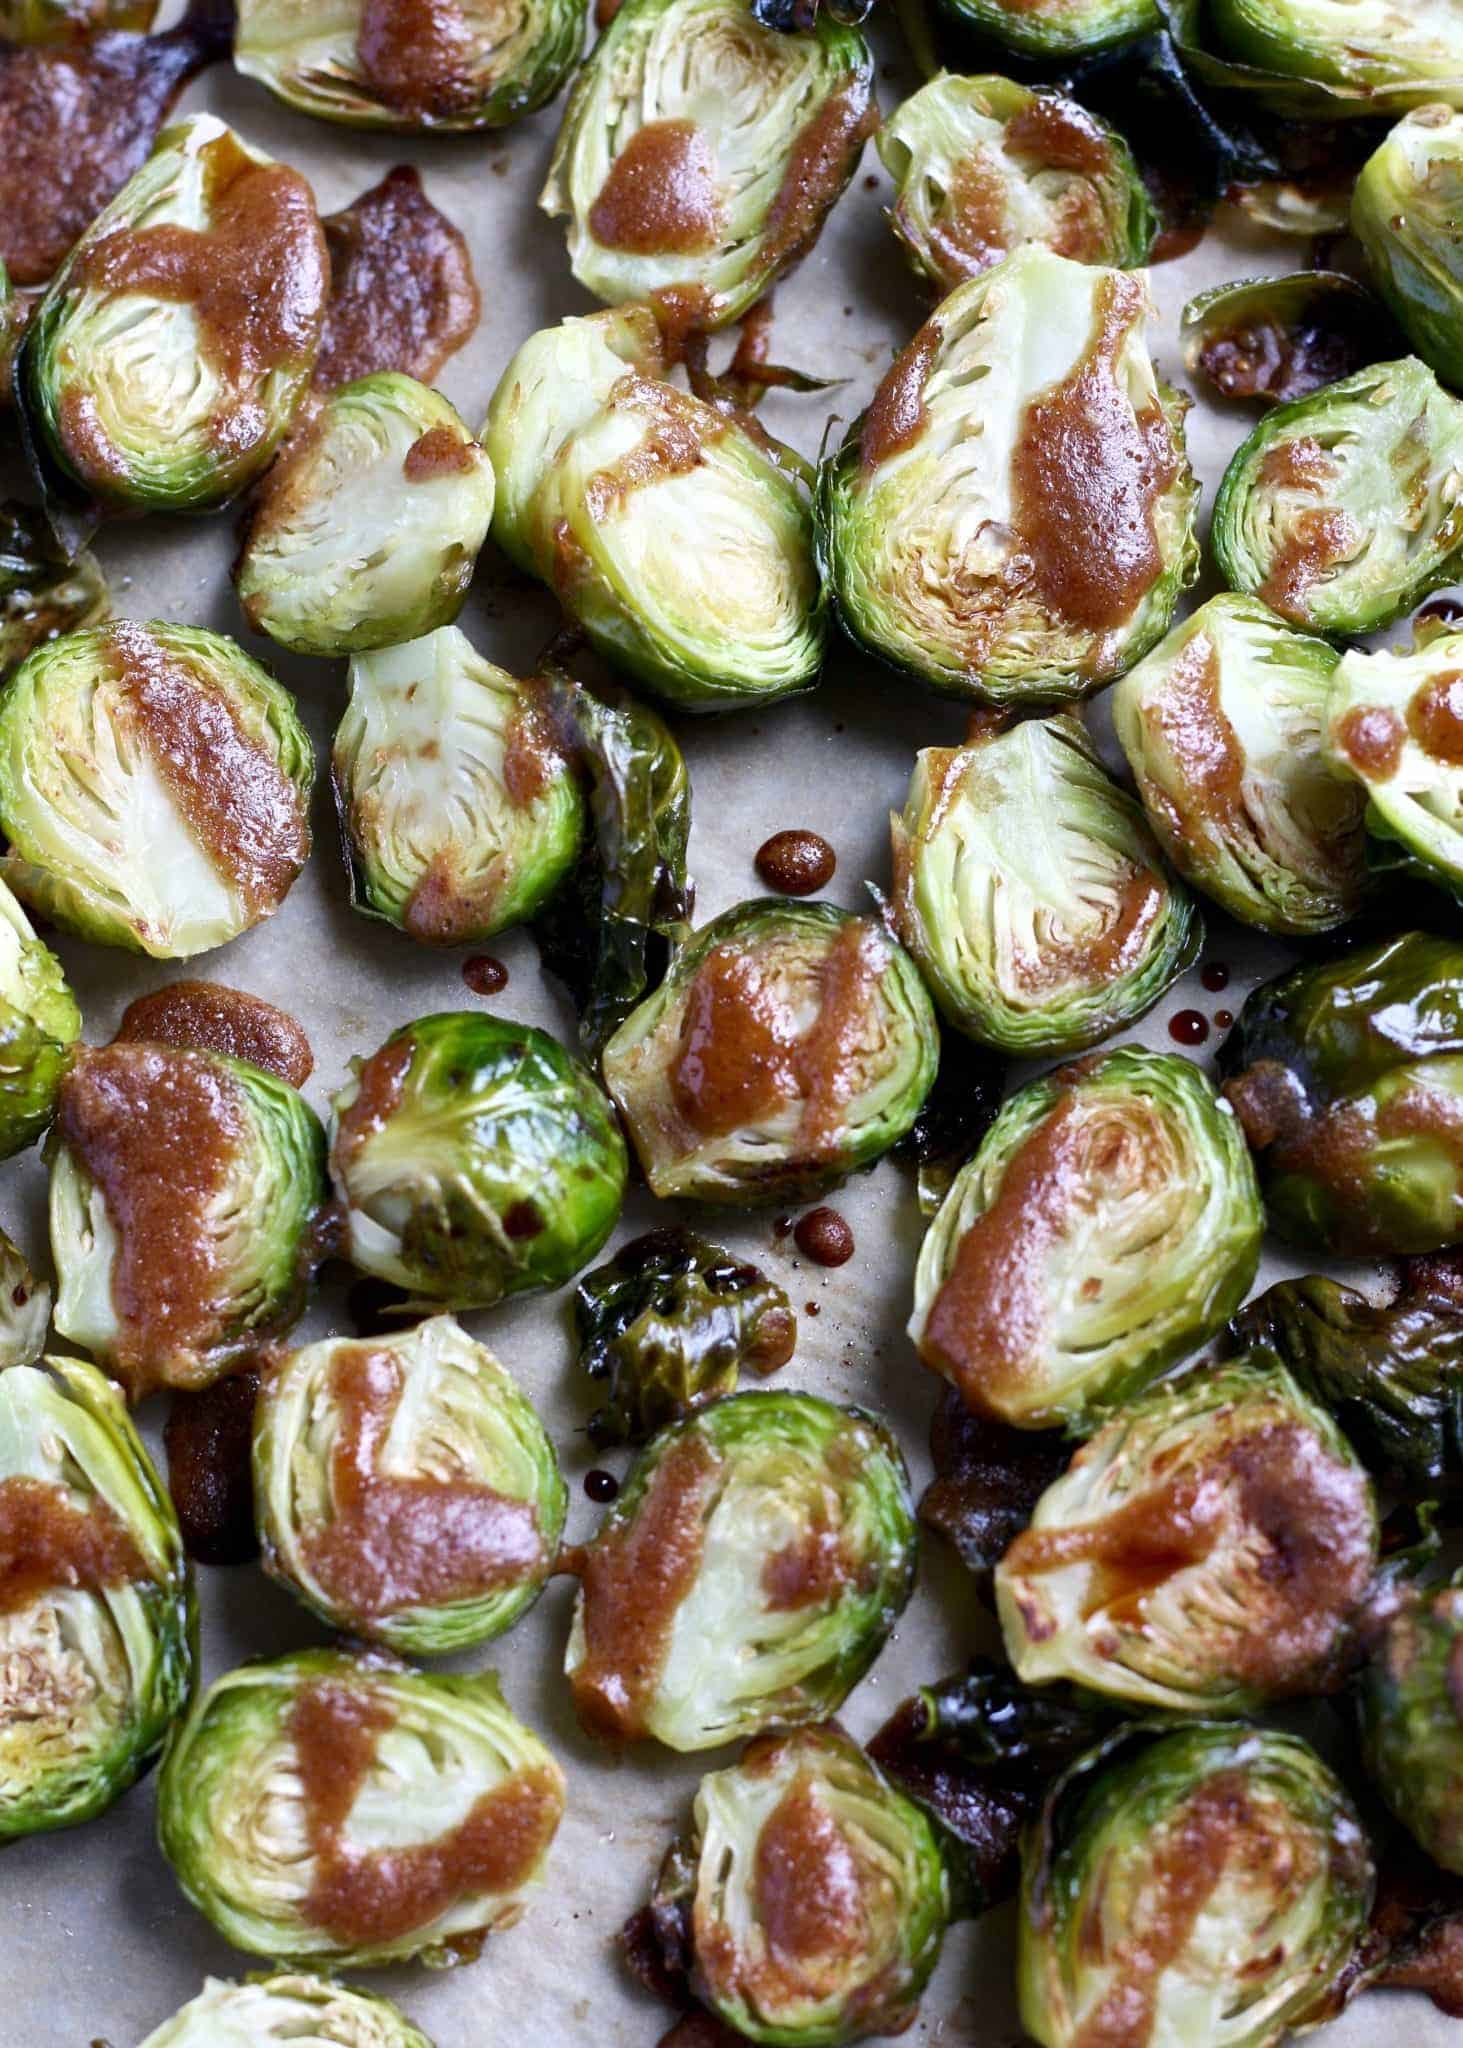 Roasted Brussels Sprouts with balsamic almond dressing on parchment paper